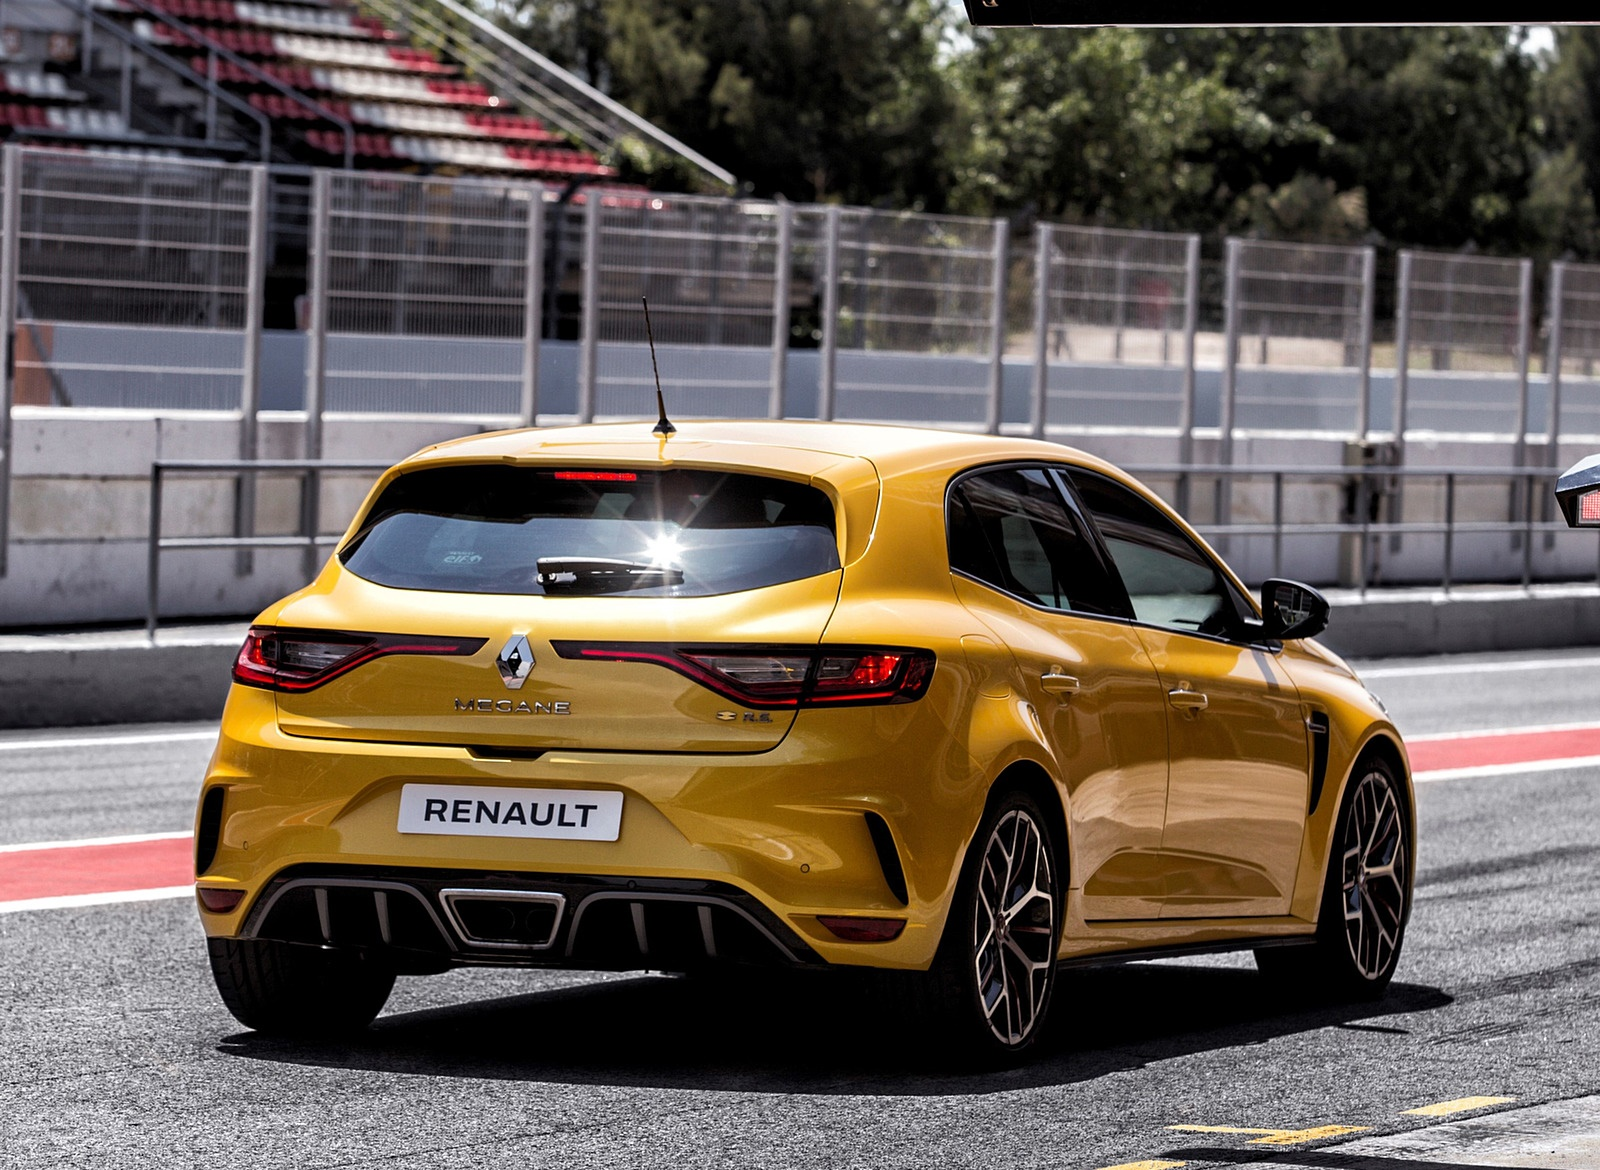 2019 Renault Megane R S Trophy Rear Three Quarter Wallpapers 4 Newcarcars